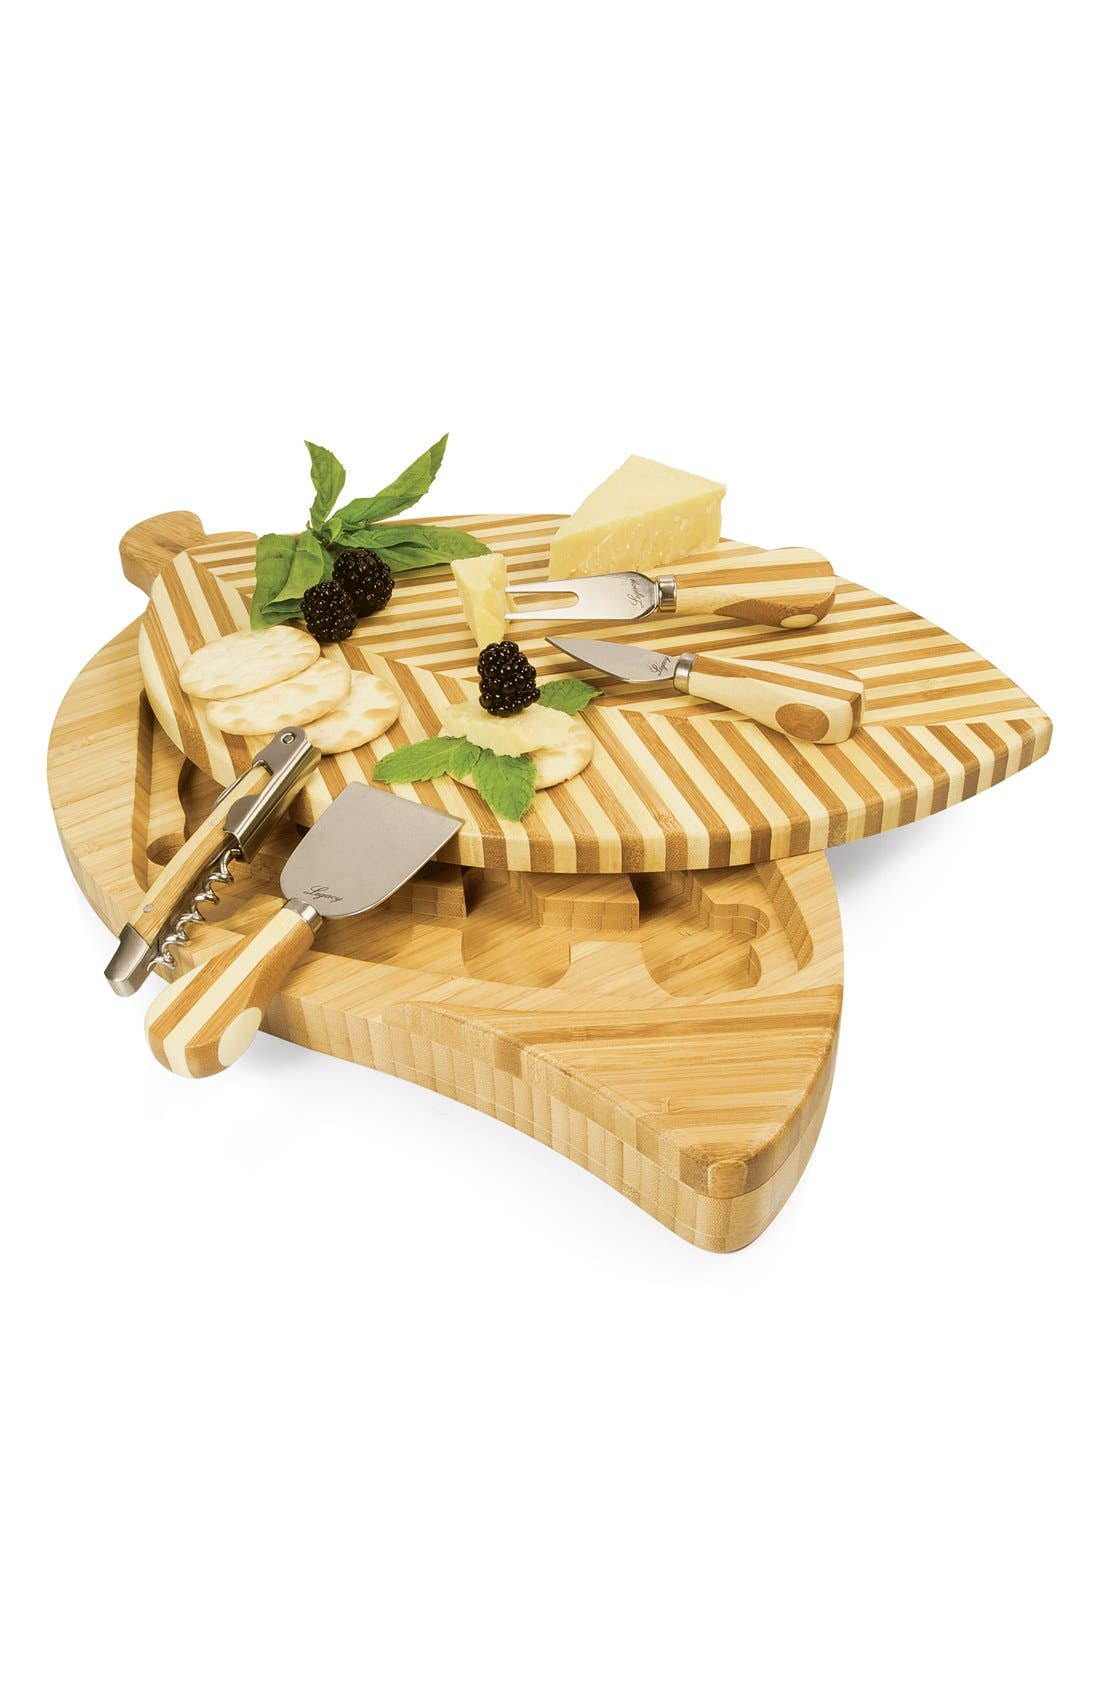 'Leaf' Cutting Board & Cheese Tools,                             Alternate thumbnail 4, color,                             200